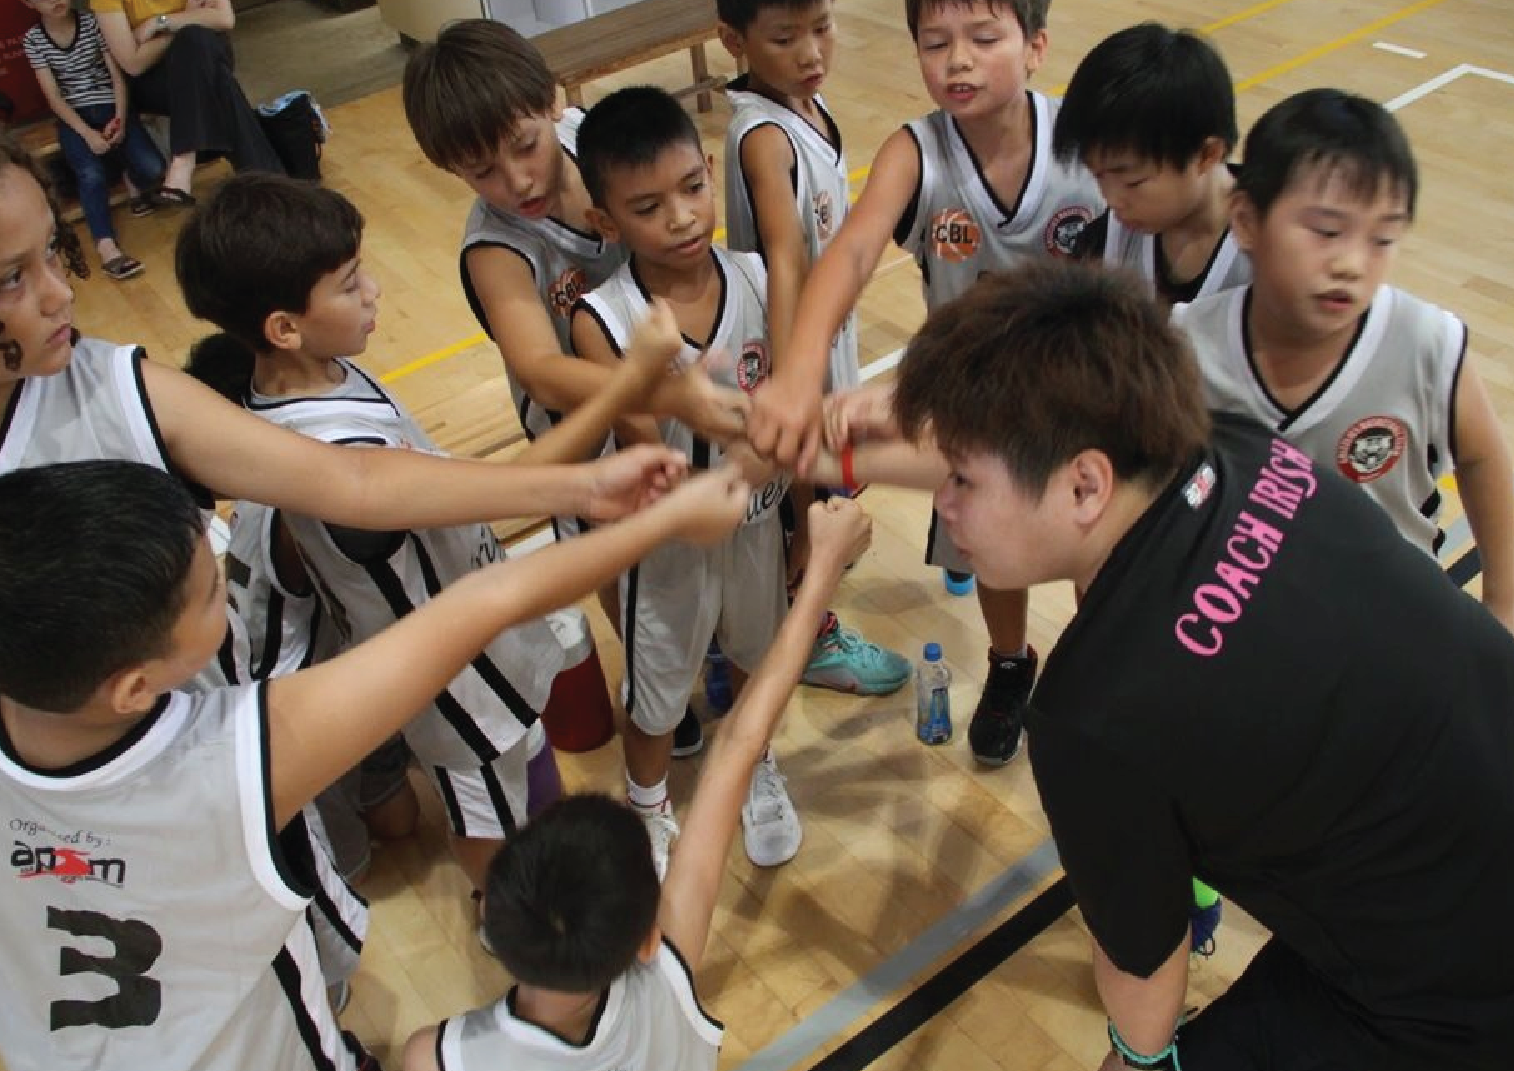 SG Basketball @ CIS Tanjong Katong - Address: 371 Tanjong Katong Rd, S(437128)